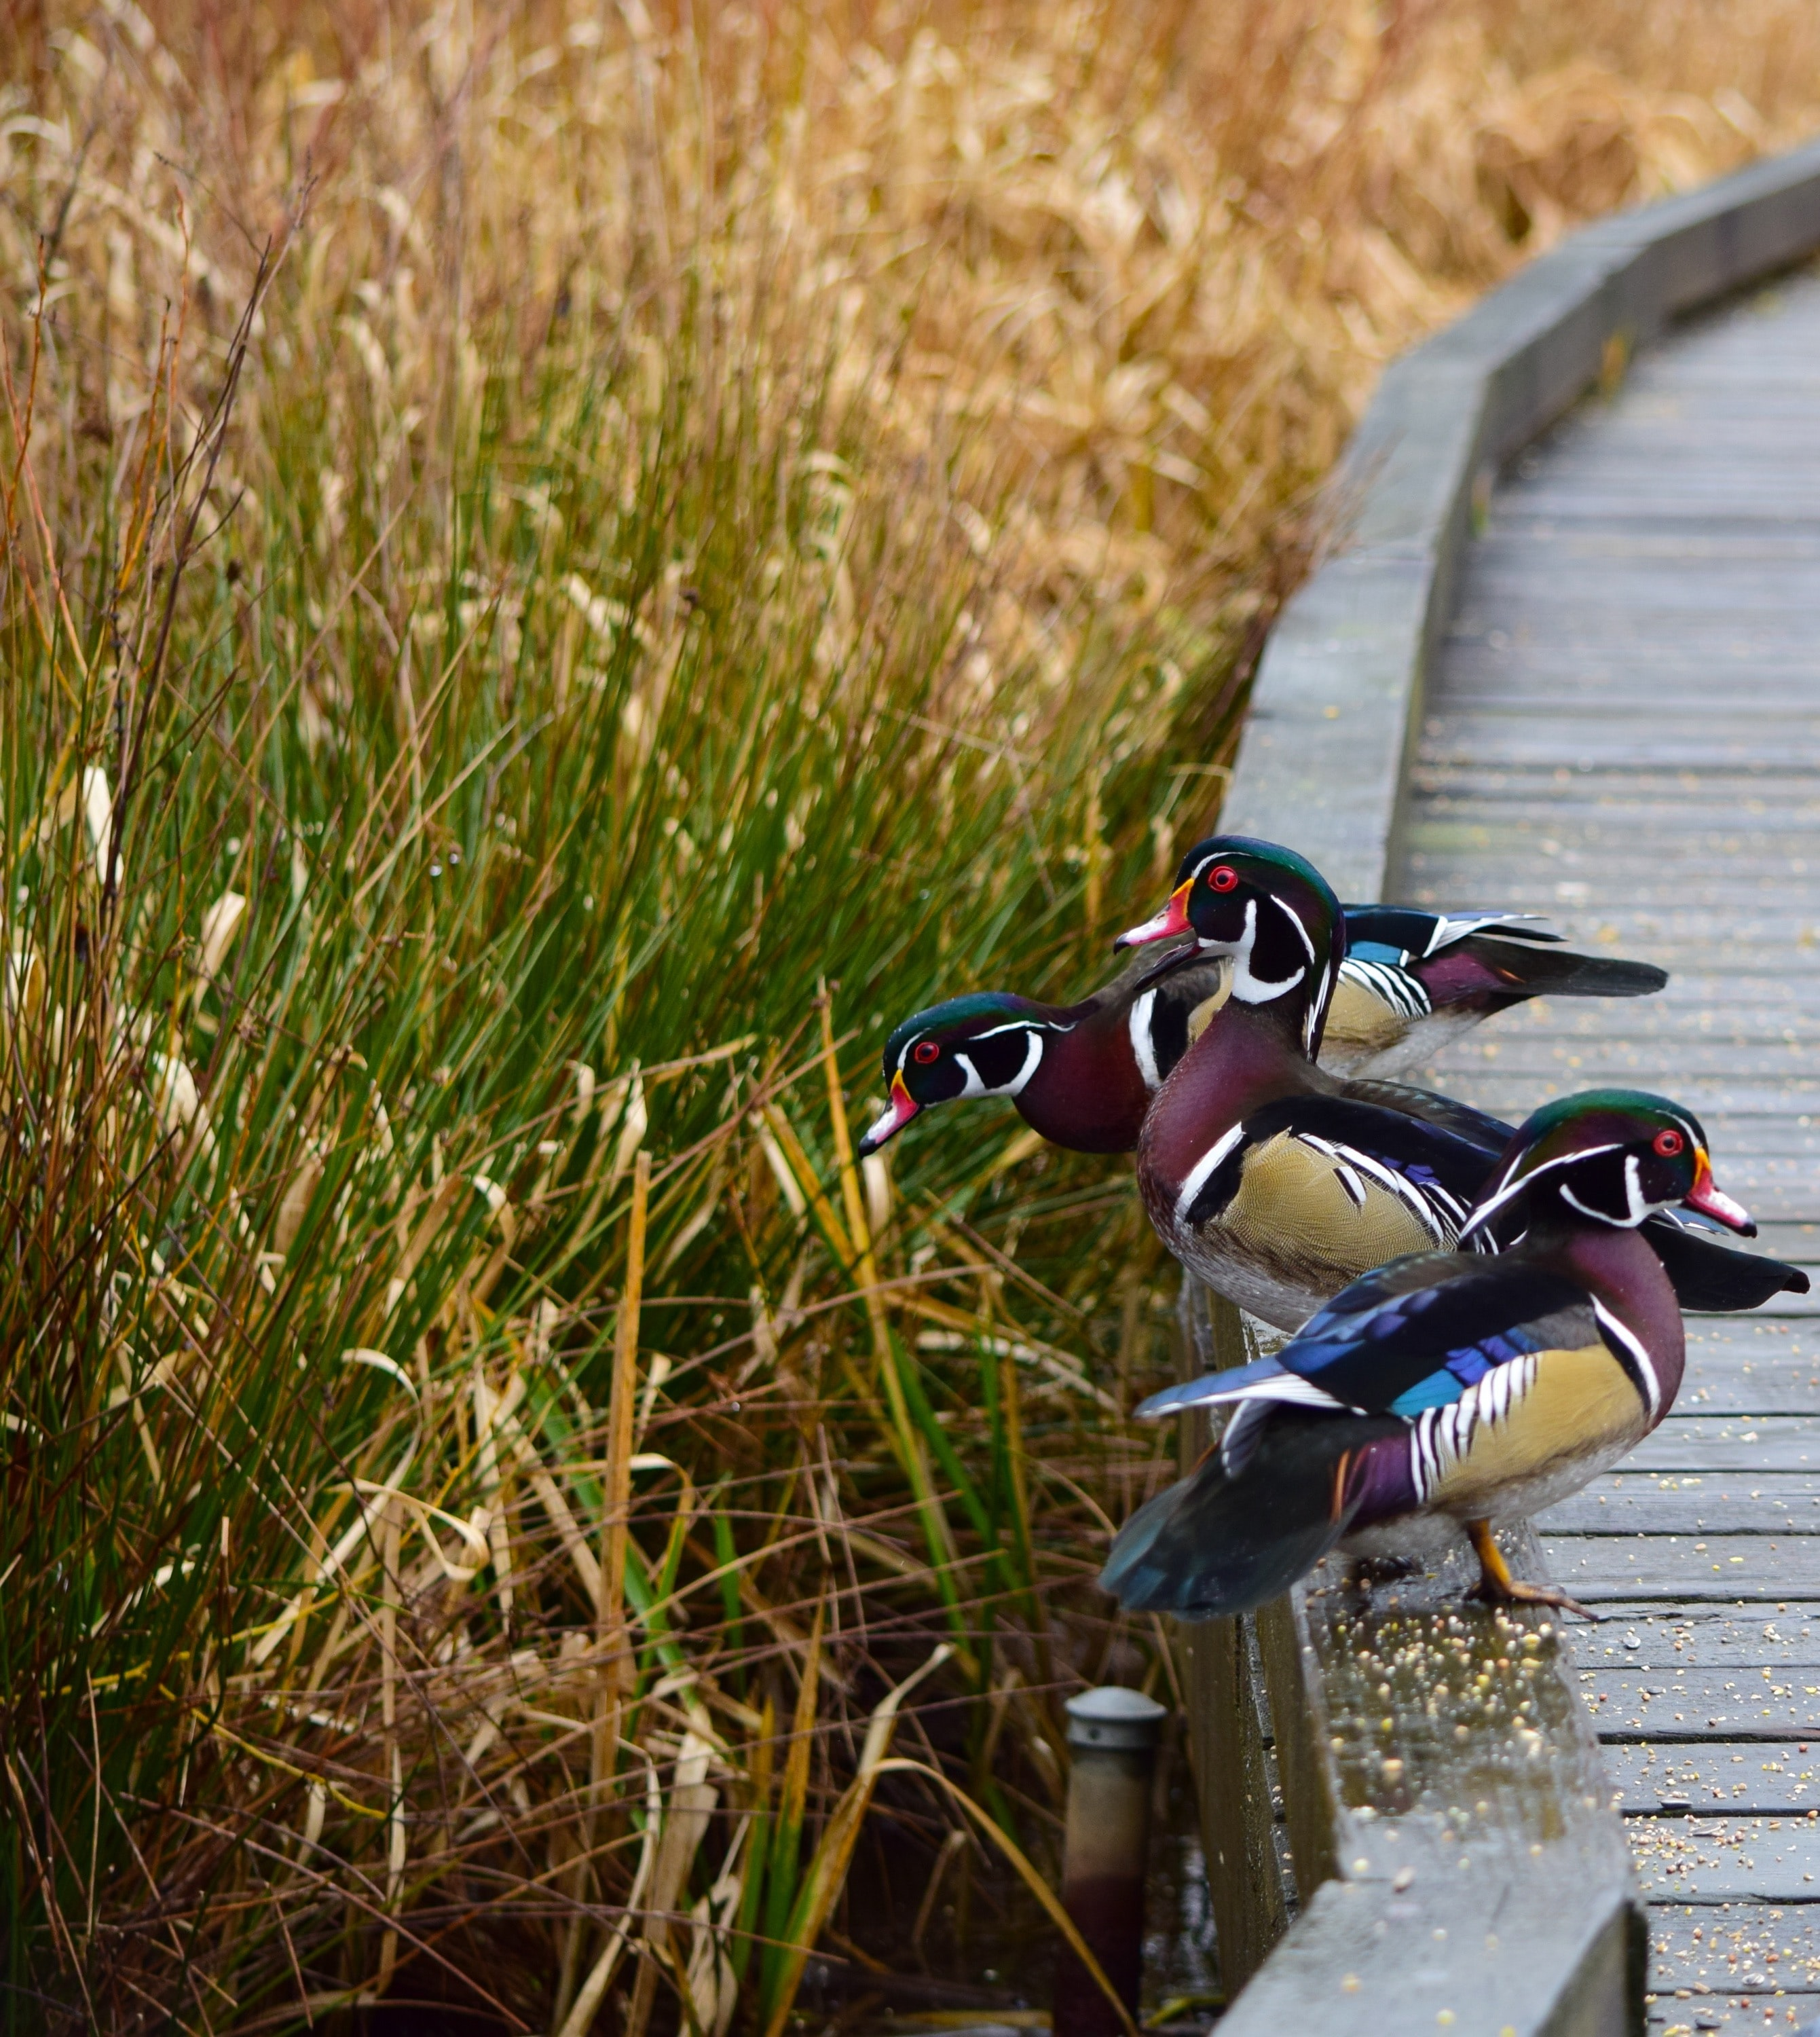 three assorted-color duck beside green grass at daytime